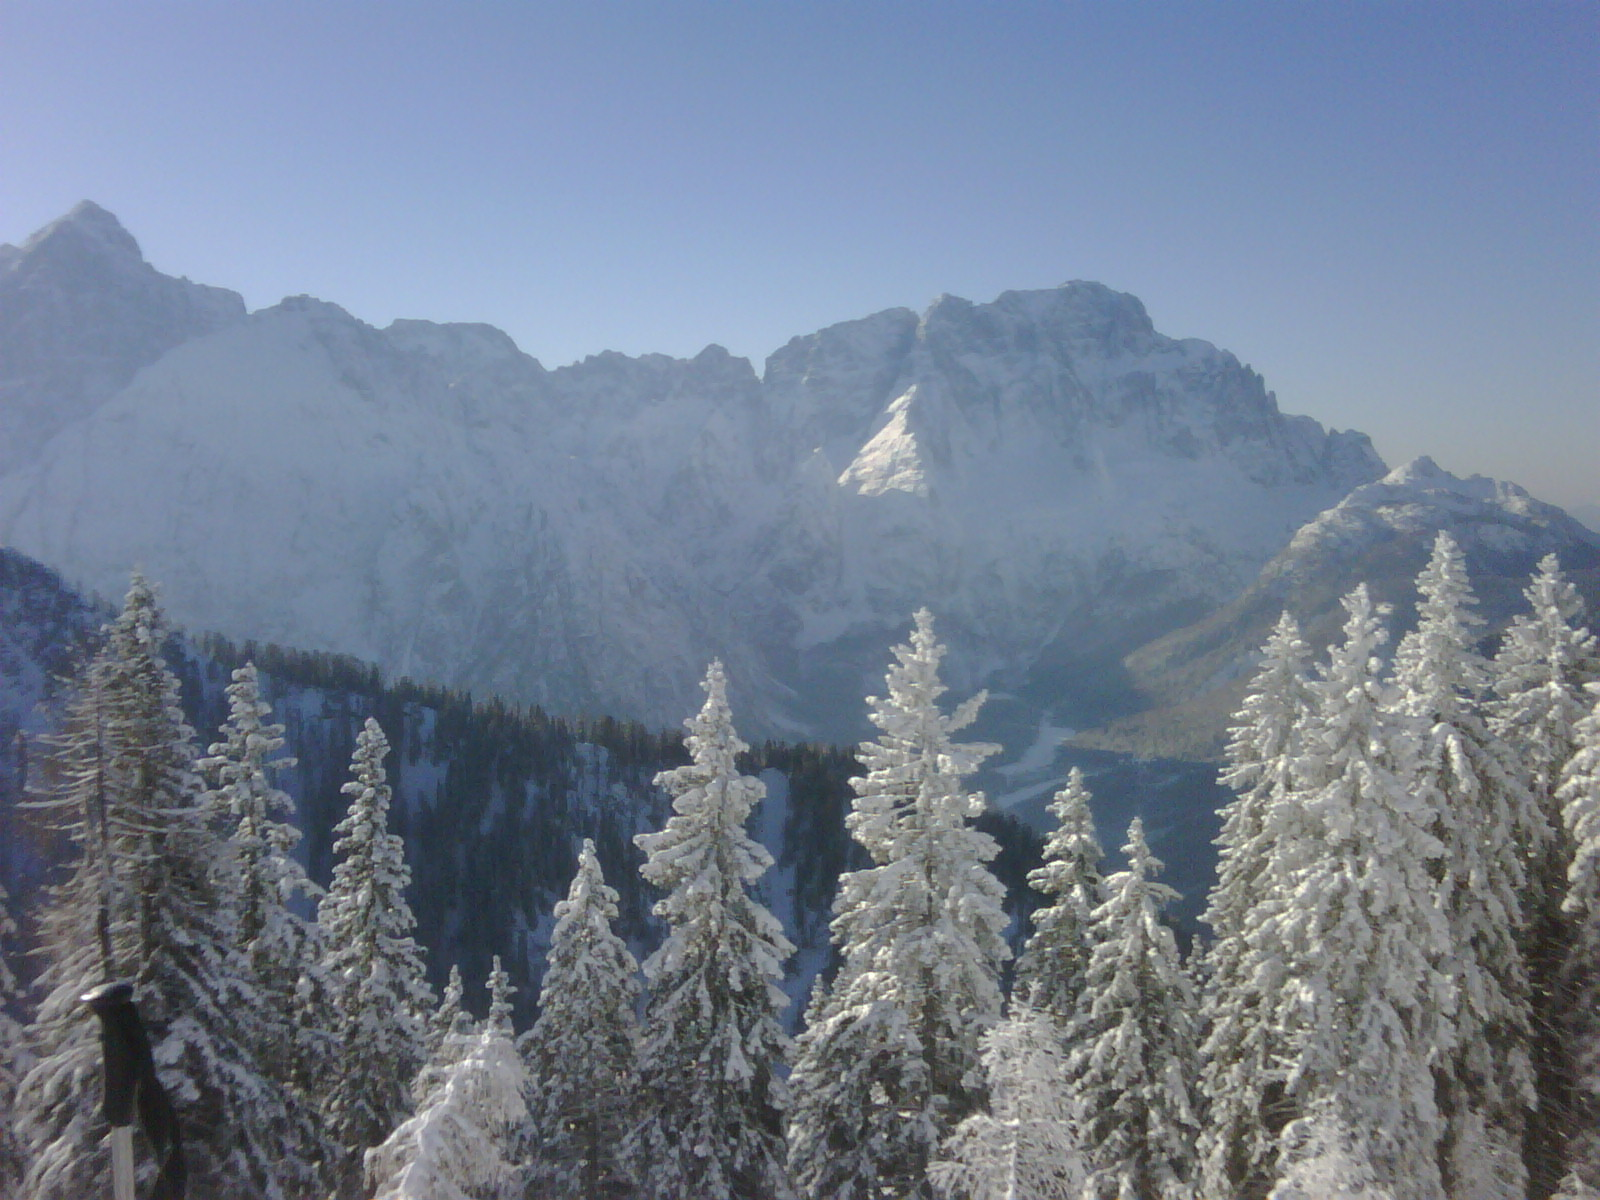 Coldest day of the year - 20 Dec 2009, Tarvisio